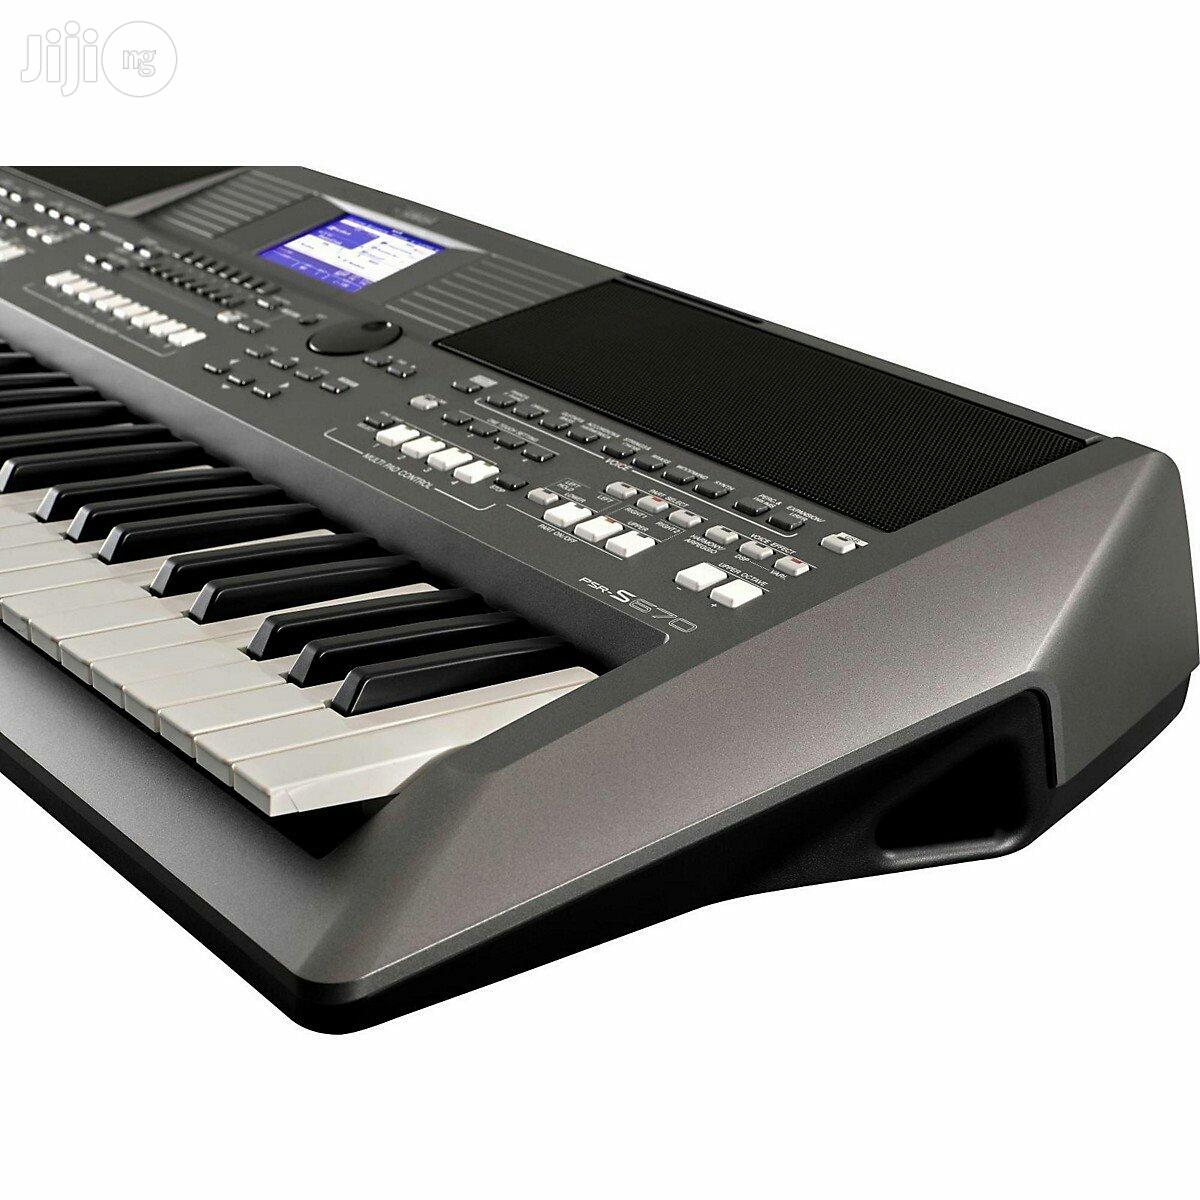 Psr S670 Yamaha Keyboard | Musical Instruments & Gear for sale in Ojo, Lagos State, Nigeria